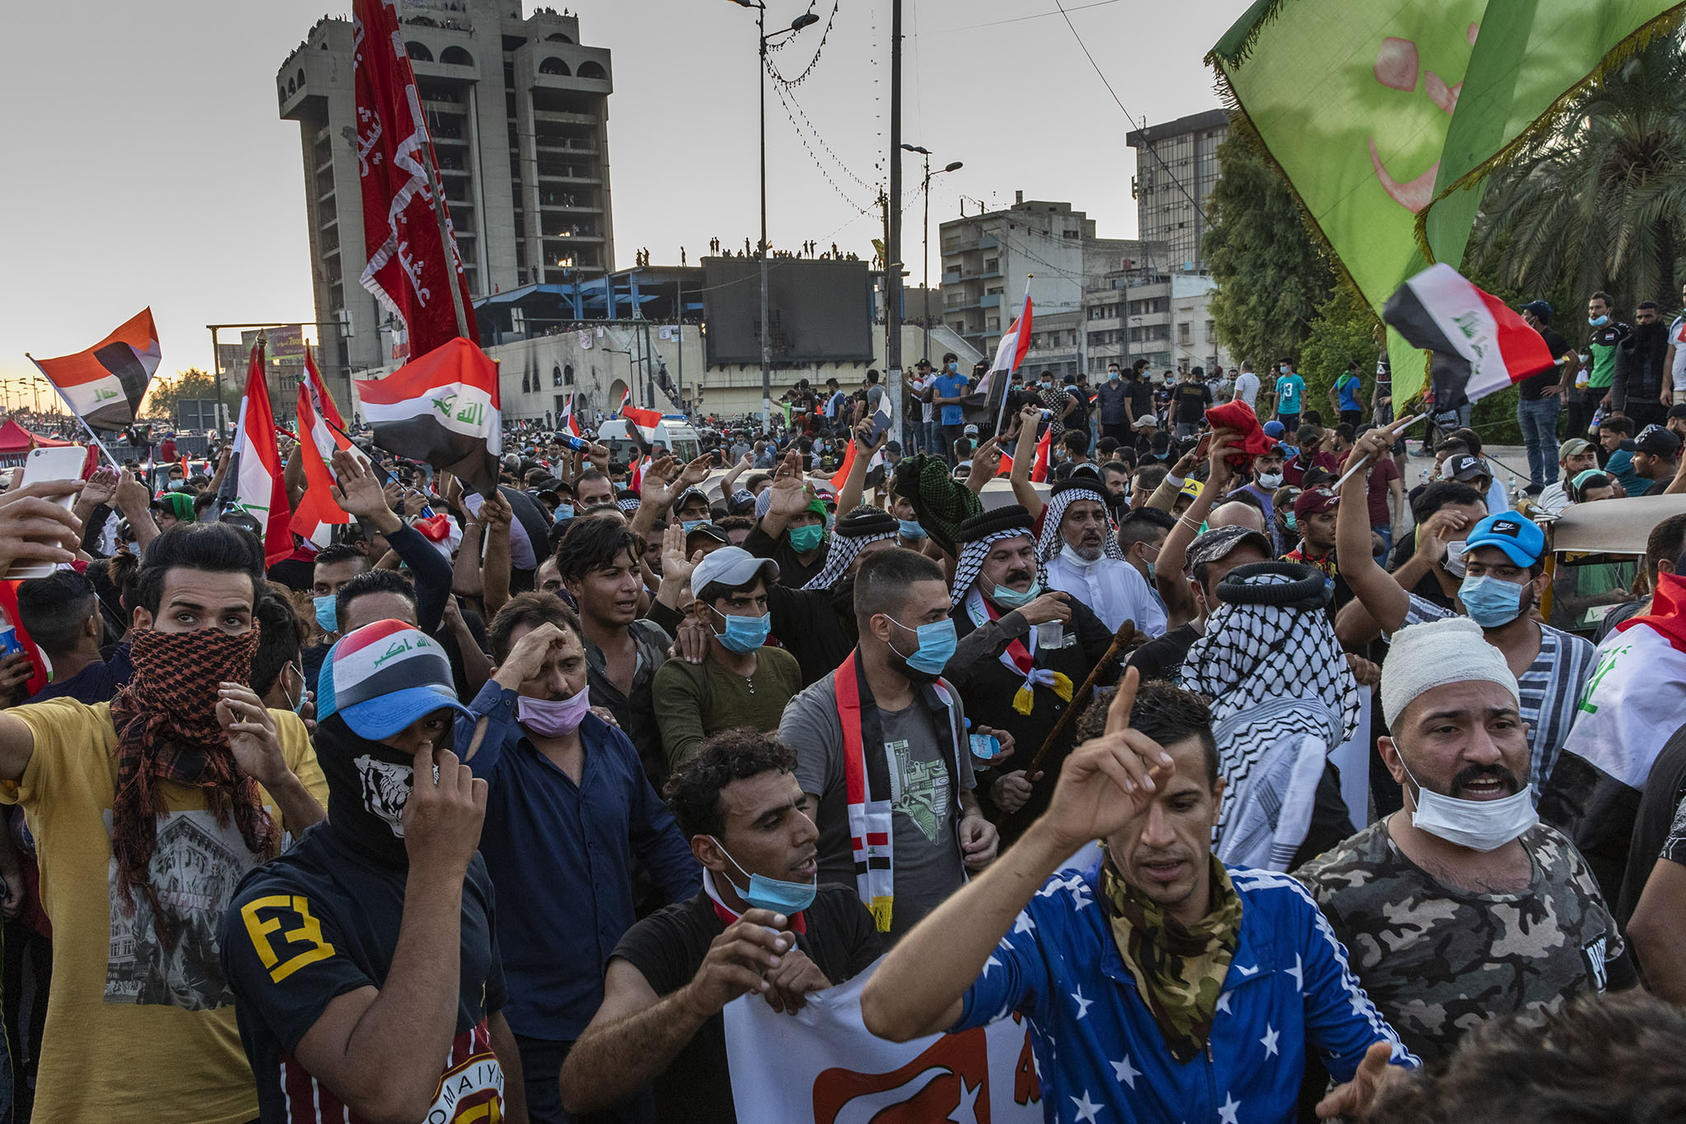 Protesters fill Tahrir Square in Baghdad, Oct. 26, 2019. Mass protests are declining worldwide in response to the COVID-19 pandemic, so movements are adapting their tactics in response to a changing world. (Ivor Prickett/The New York Times)